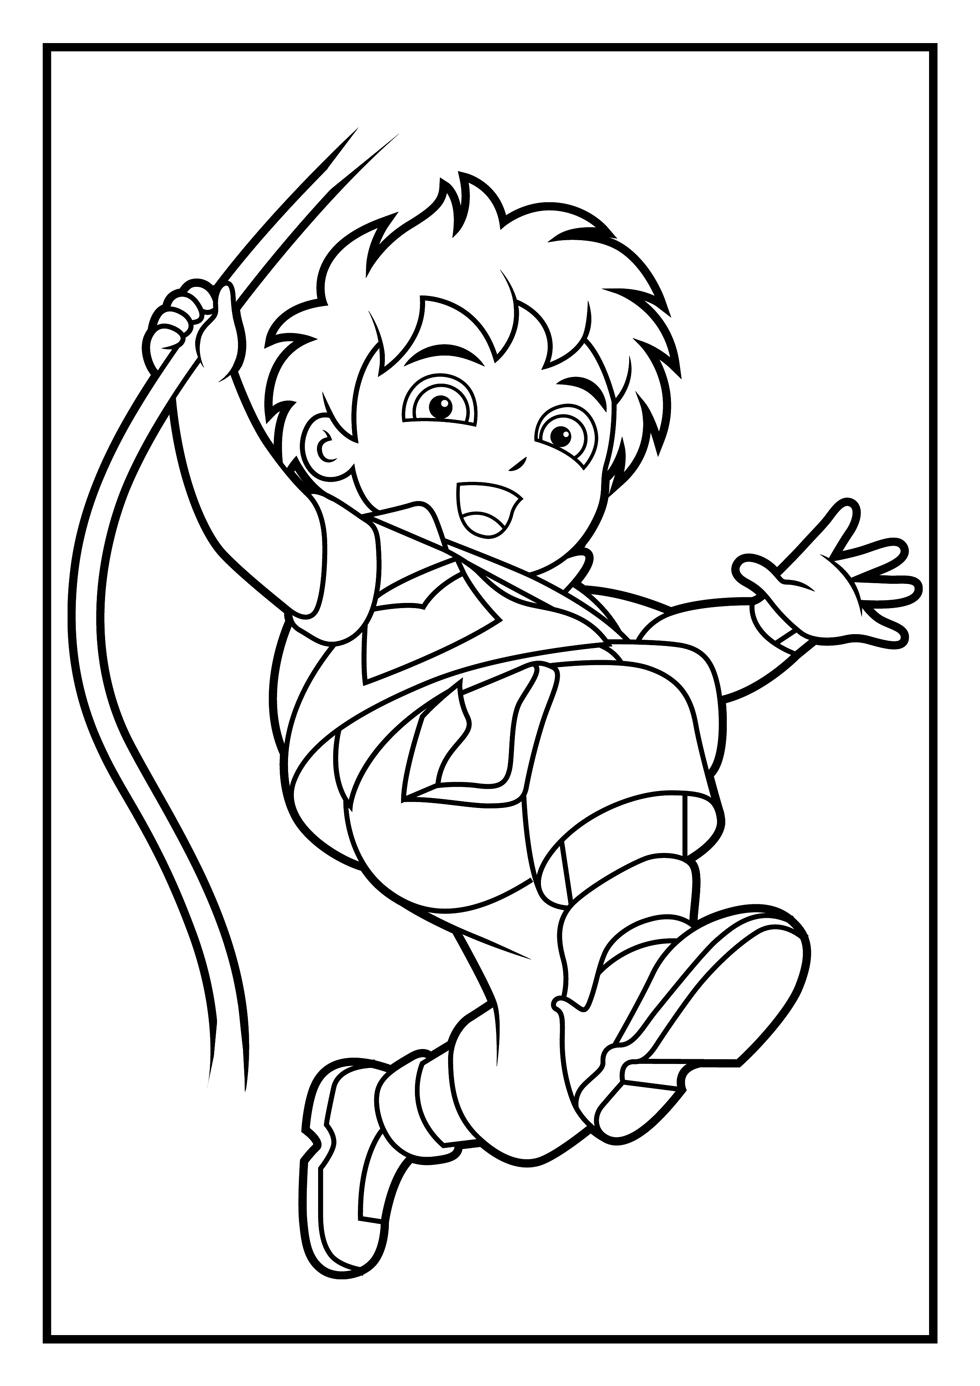 Dora Coloring Pages Diego Coloring Pages Diego Coloring Pages